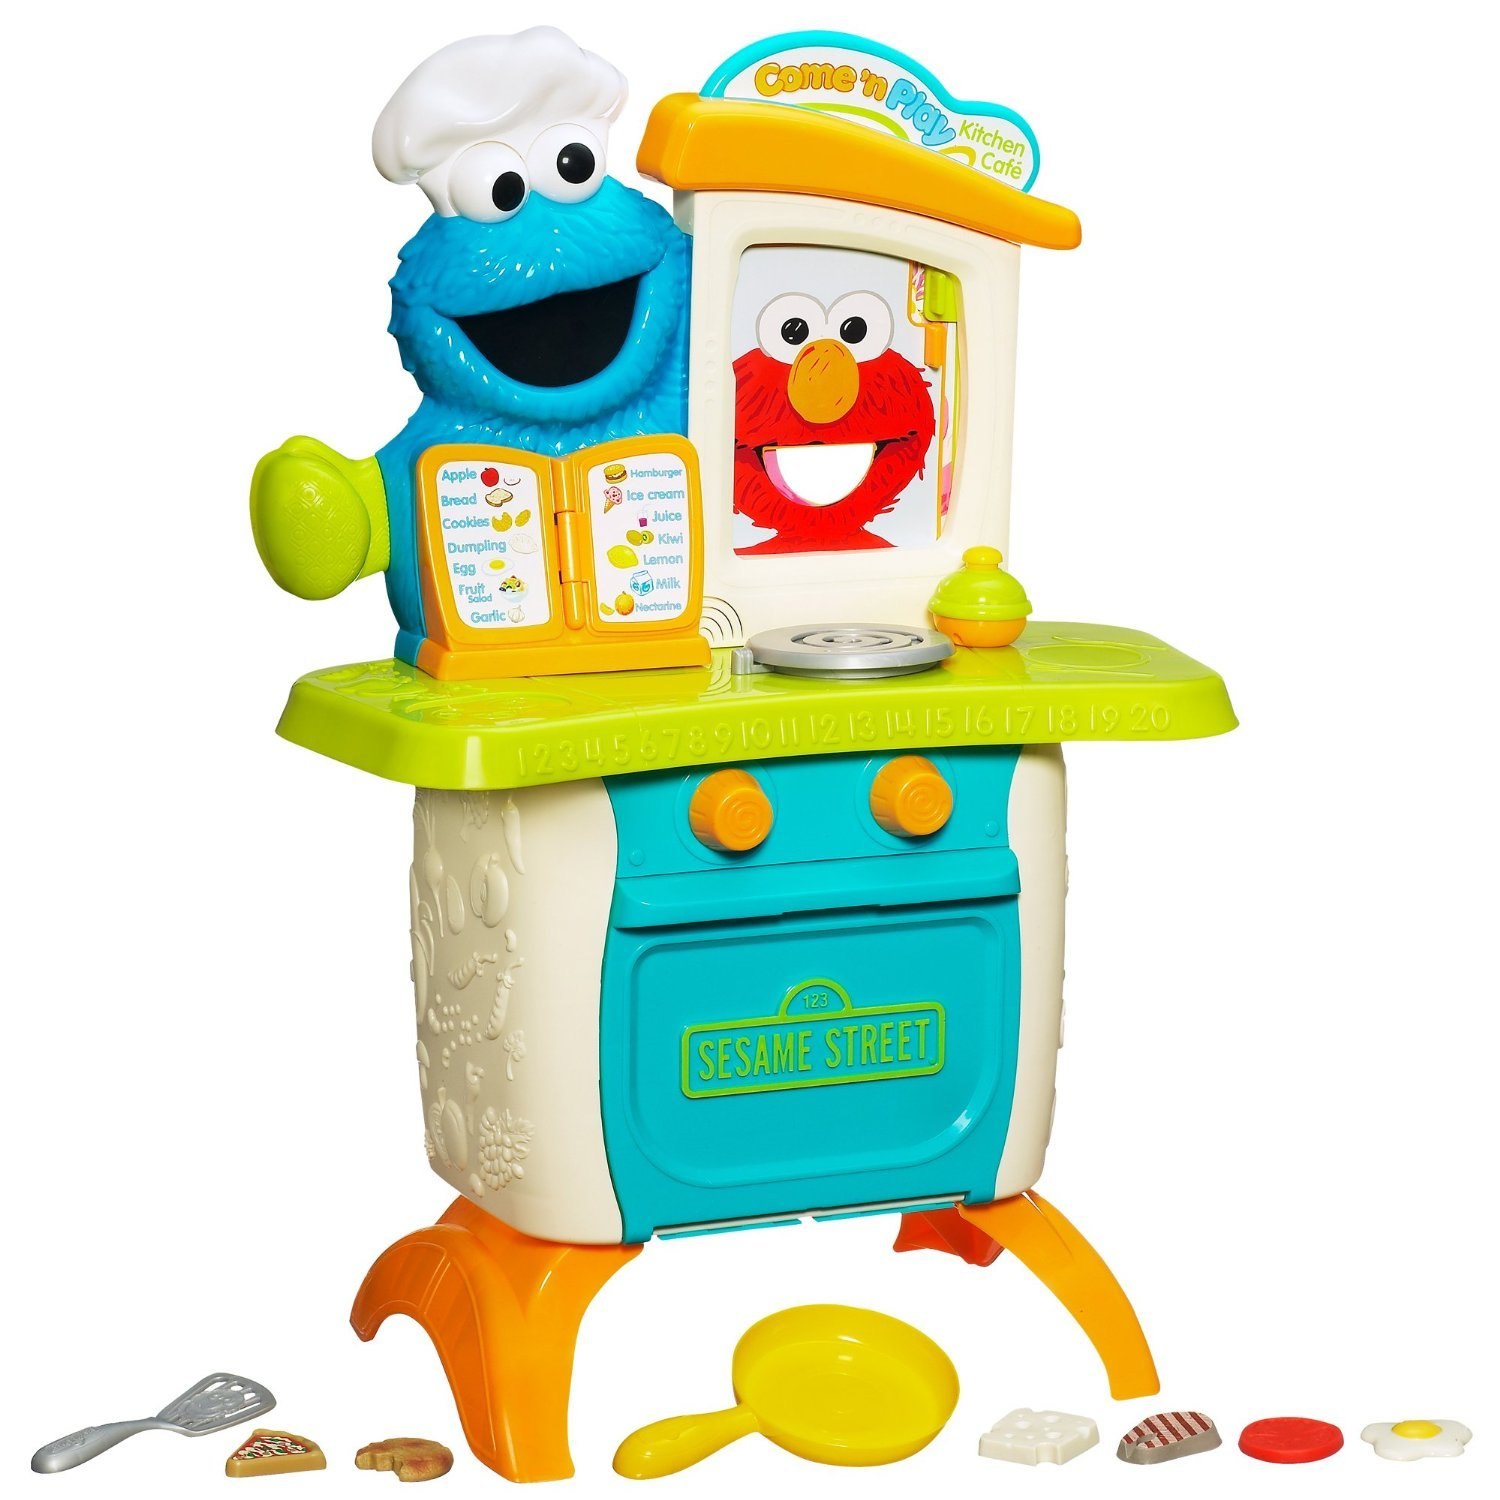 Play kitchen clip art - Amazon Com Sesame Street Playskool Come N Play Cookie Monster Kitchen Cafe Play Set Age 18 Months And Up Toys Games